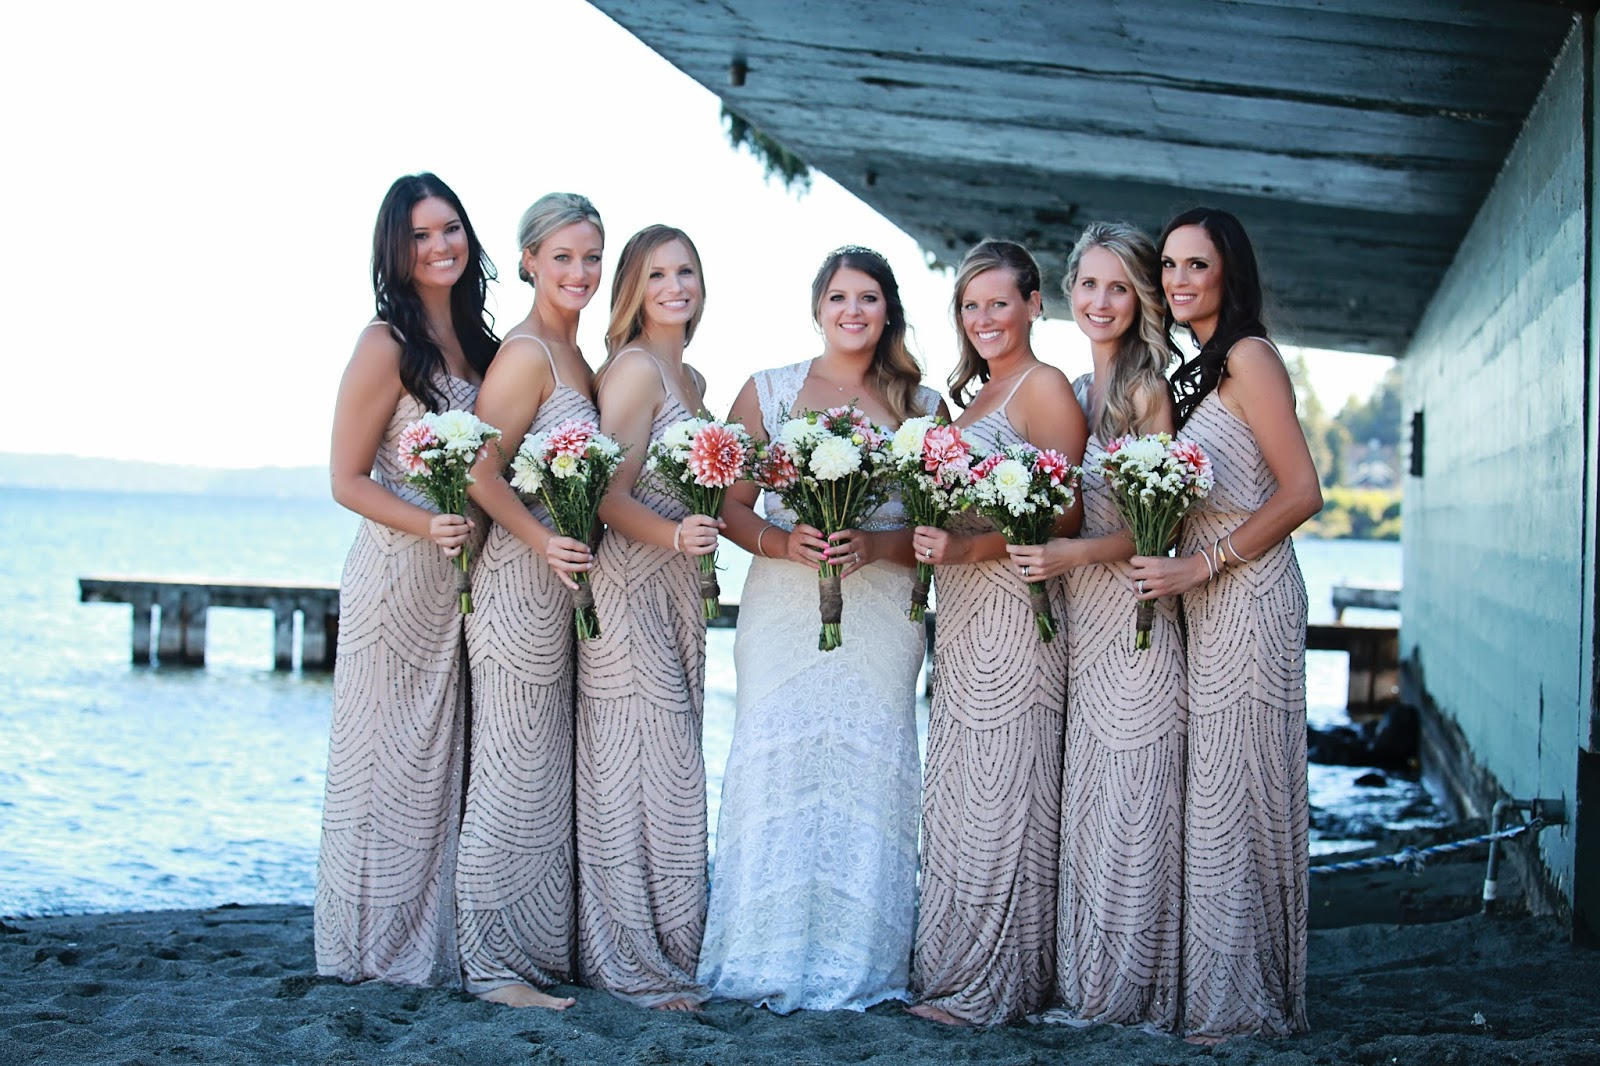 When Deciding On What I Wanted My Bridesmaids To Wear Knew That Didn T Want The Typical Bridesmaid Dress Something Non Traditional